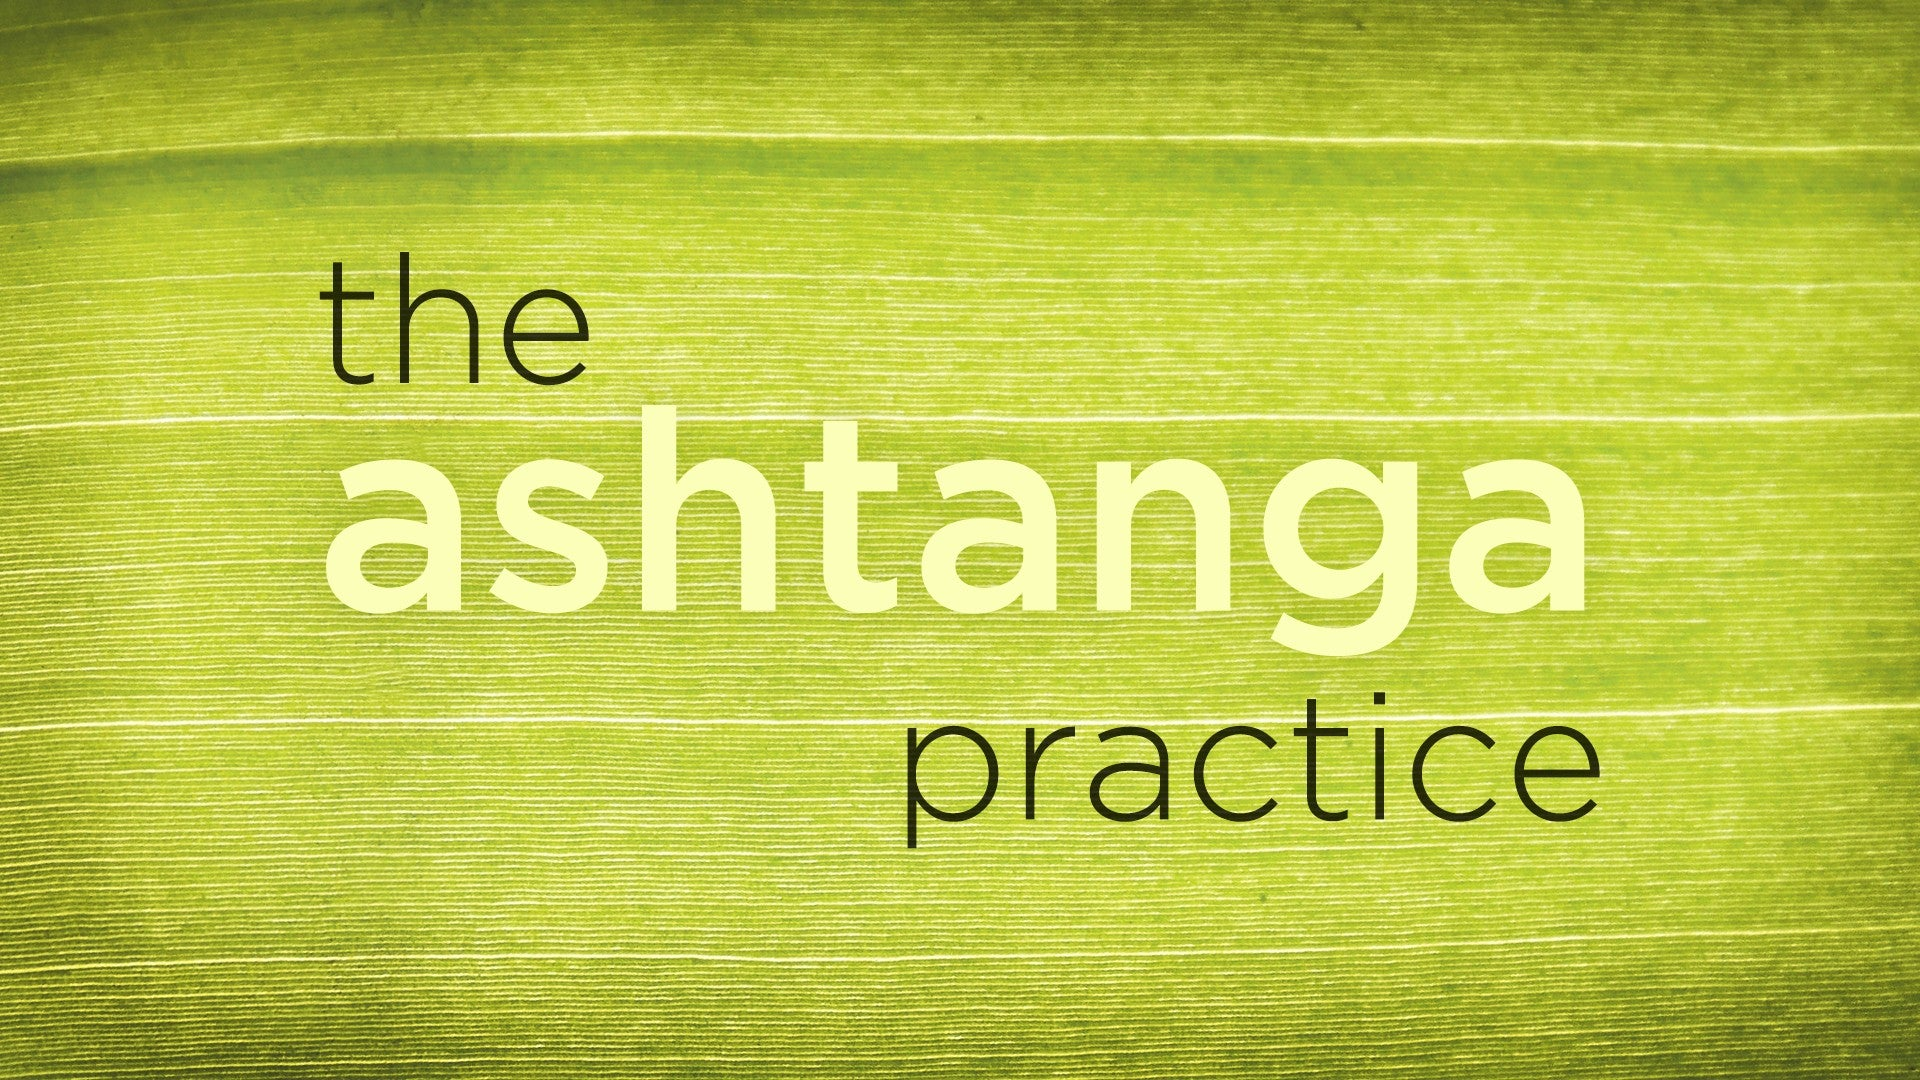 The Ashtanga Practice Artwork